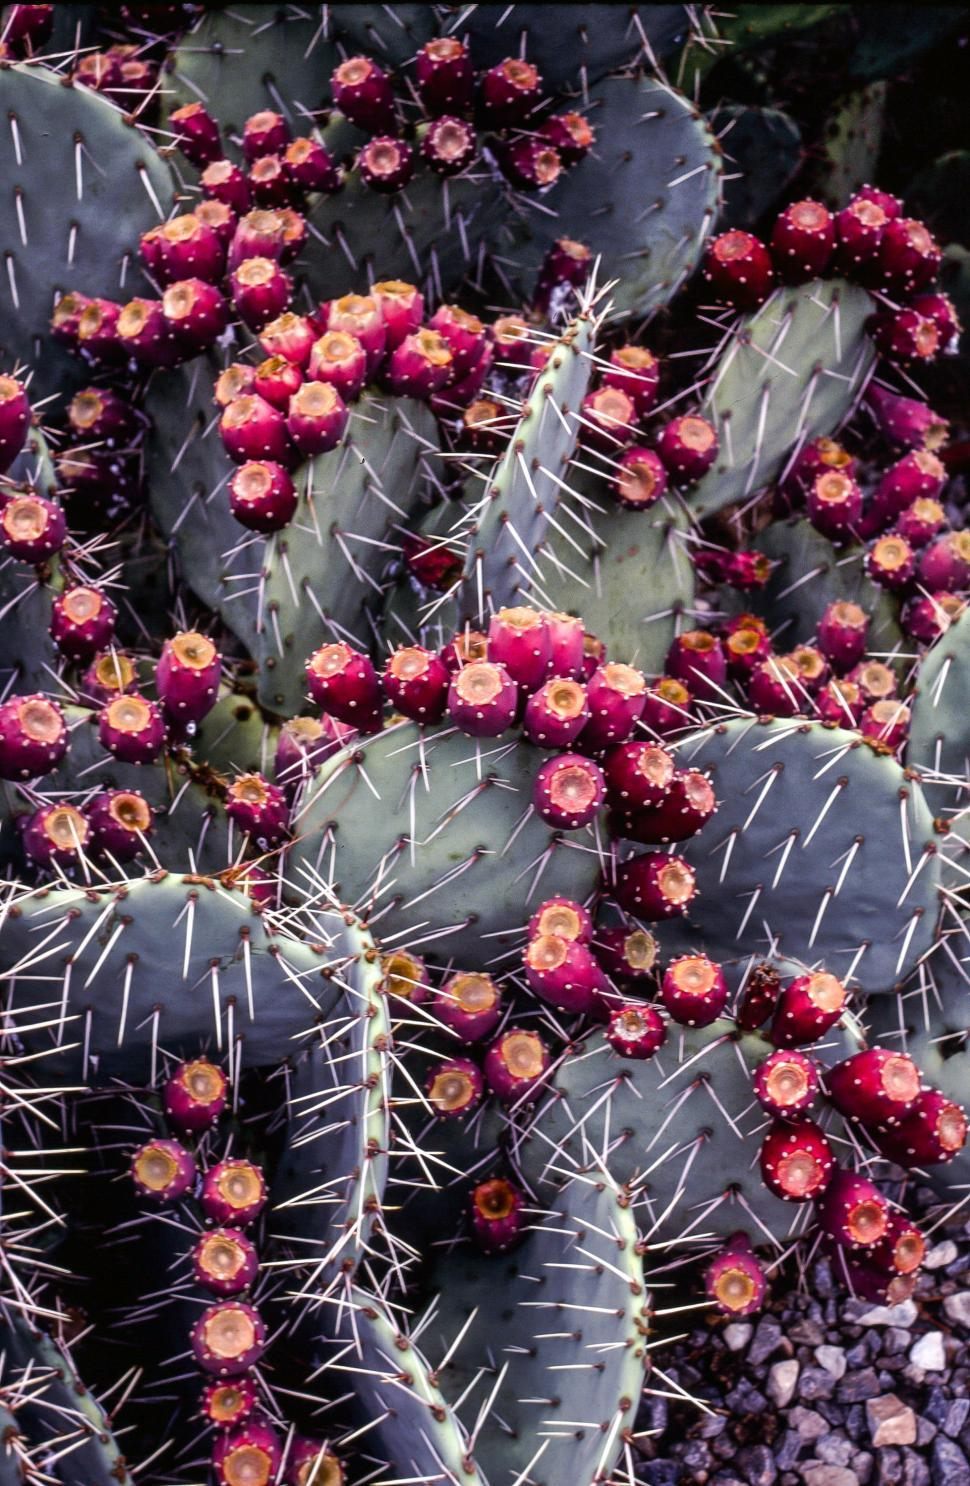 Download Free Stock HD Photo of Prickly pear fruits on cactus plant Online